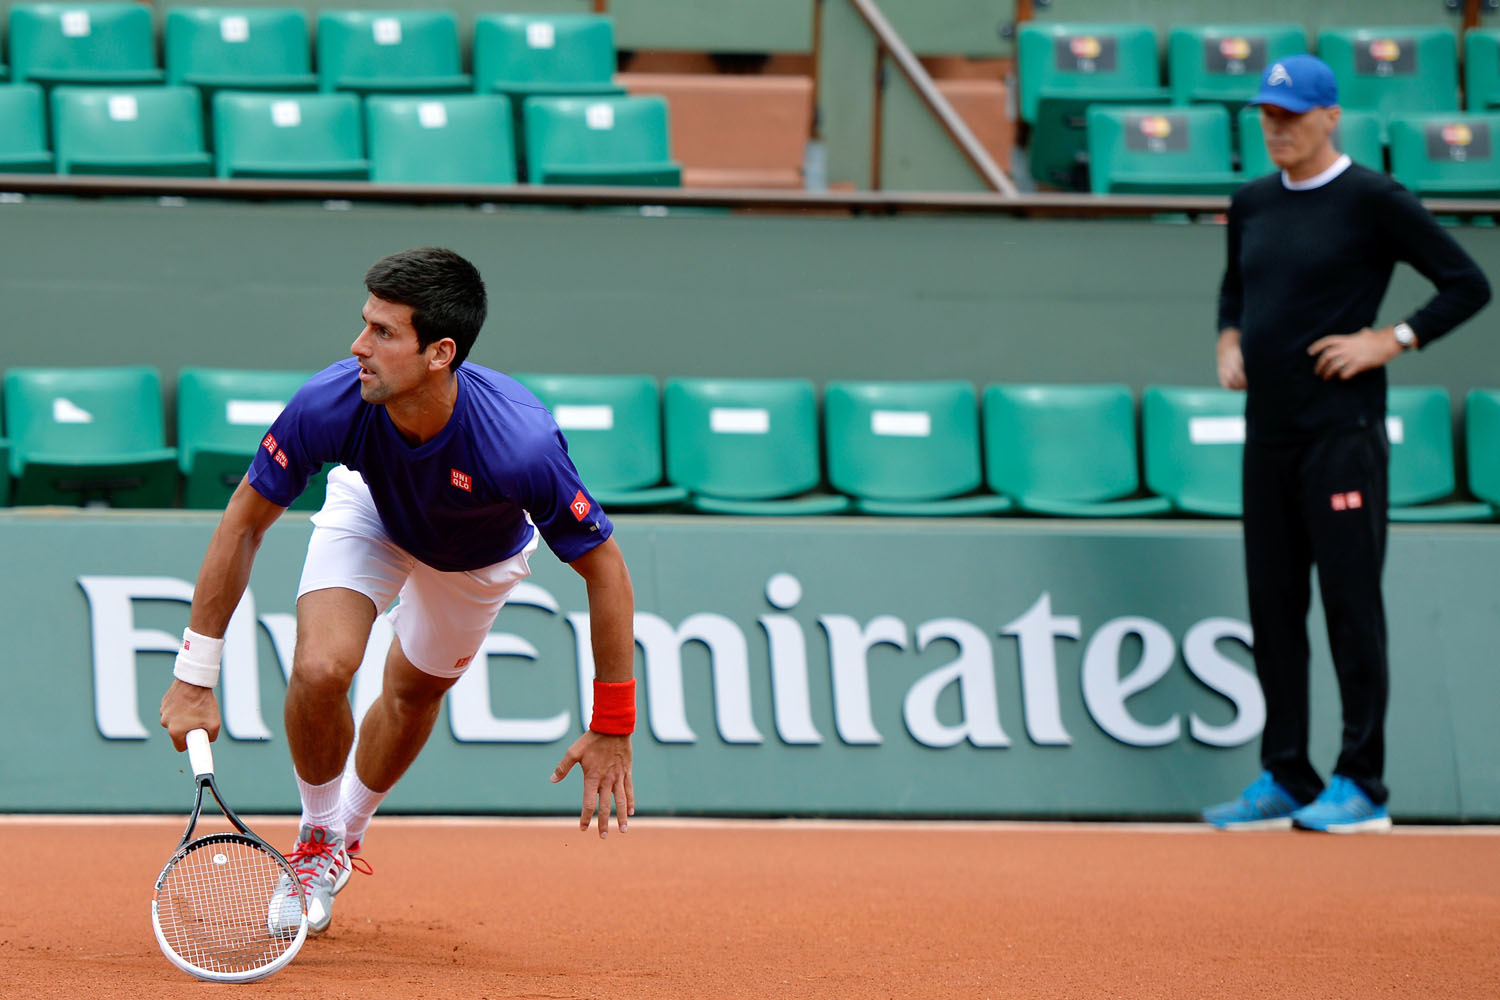 Serbia's Novak Djokovic trains at the Roland Garros stadium in Paris on May 23, 2014, ahead of the start of the Grand Slam tennis tournament.